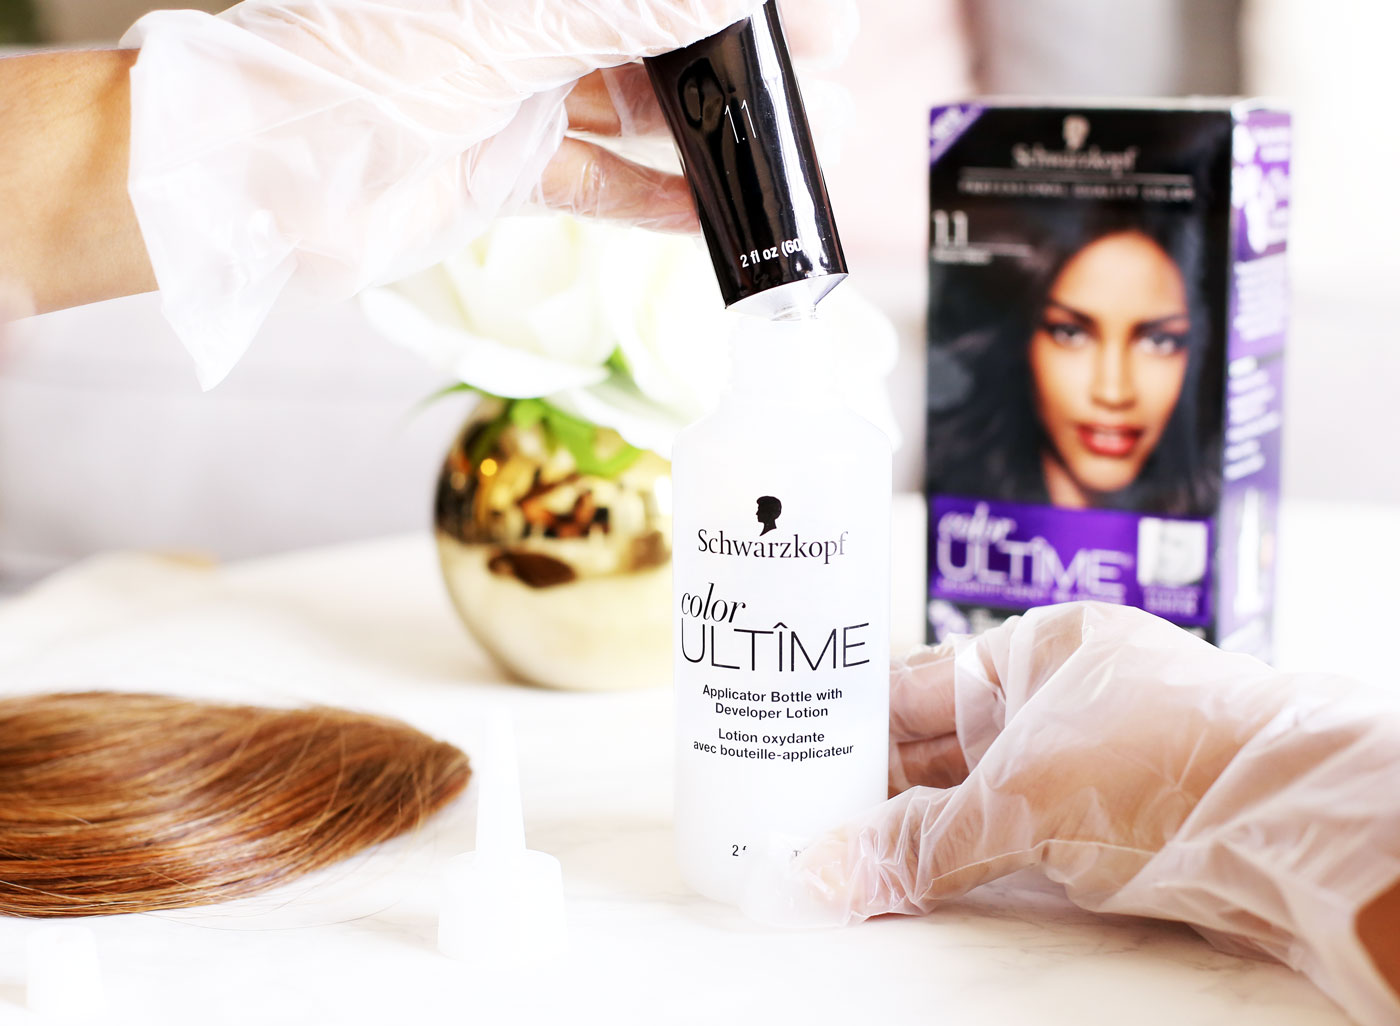 How to Dye Clip-On Bangs with Schwarzkopf Color Ultime